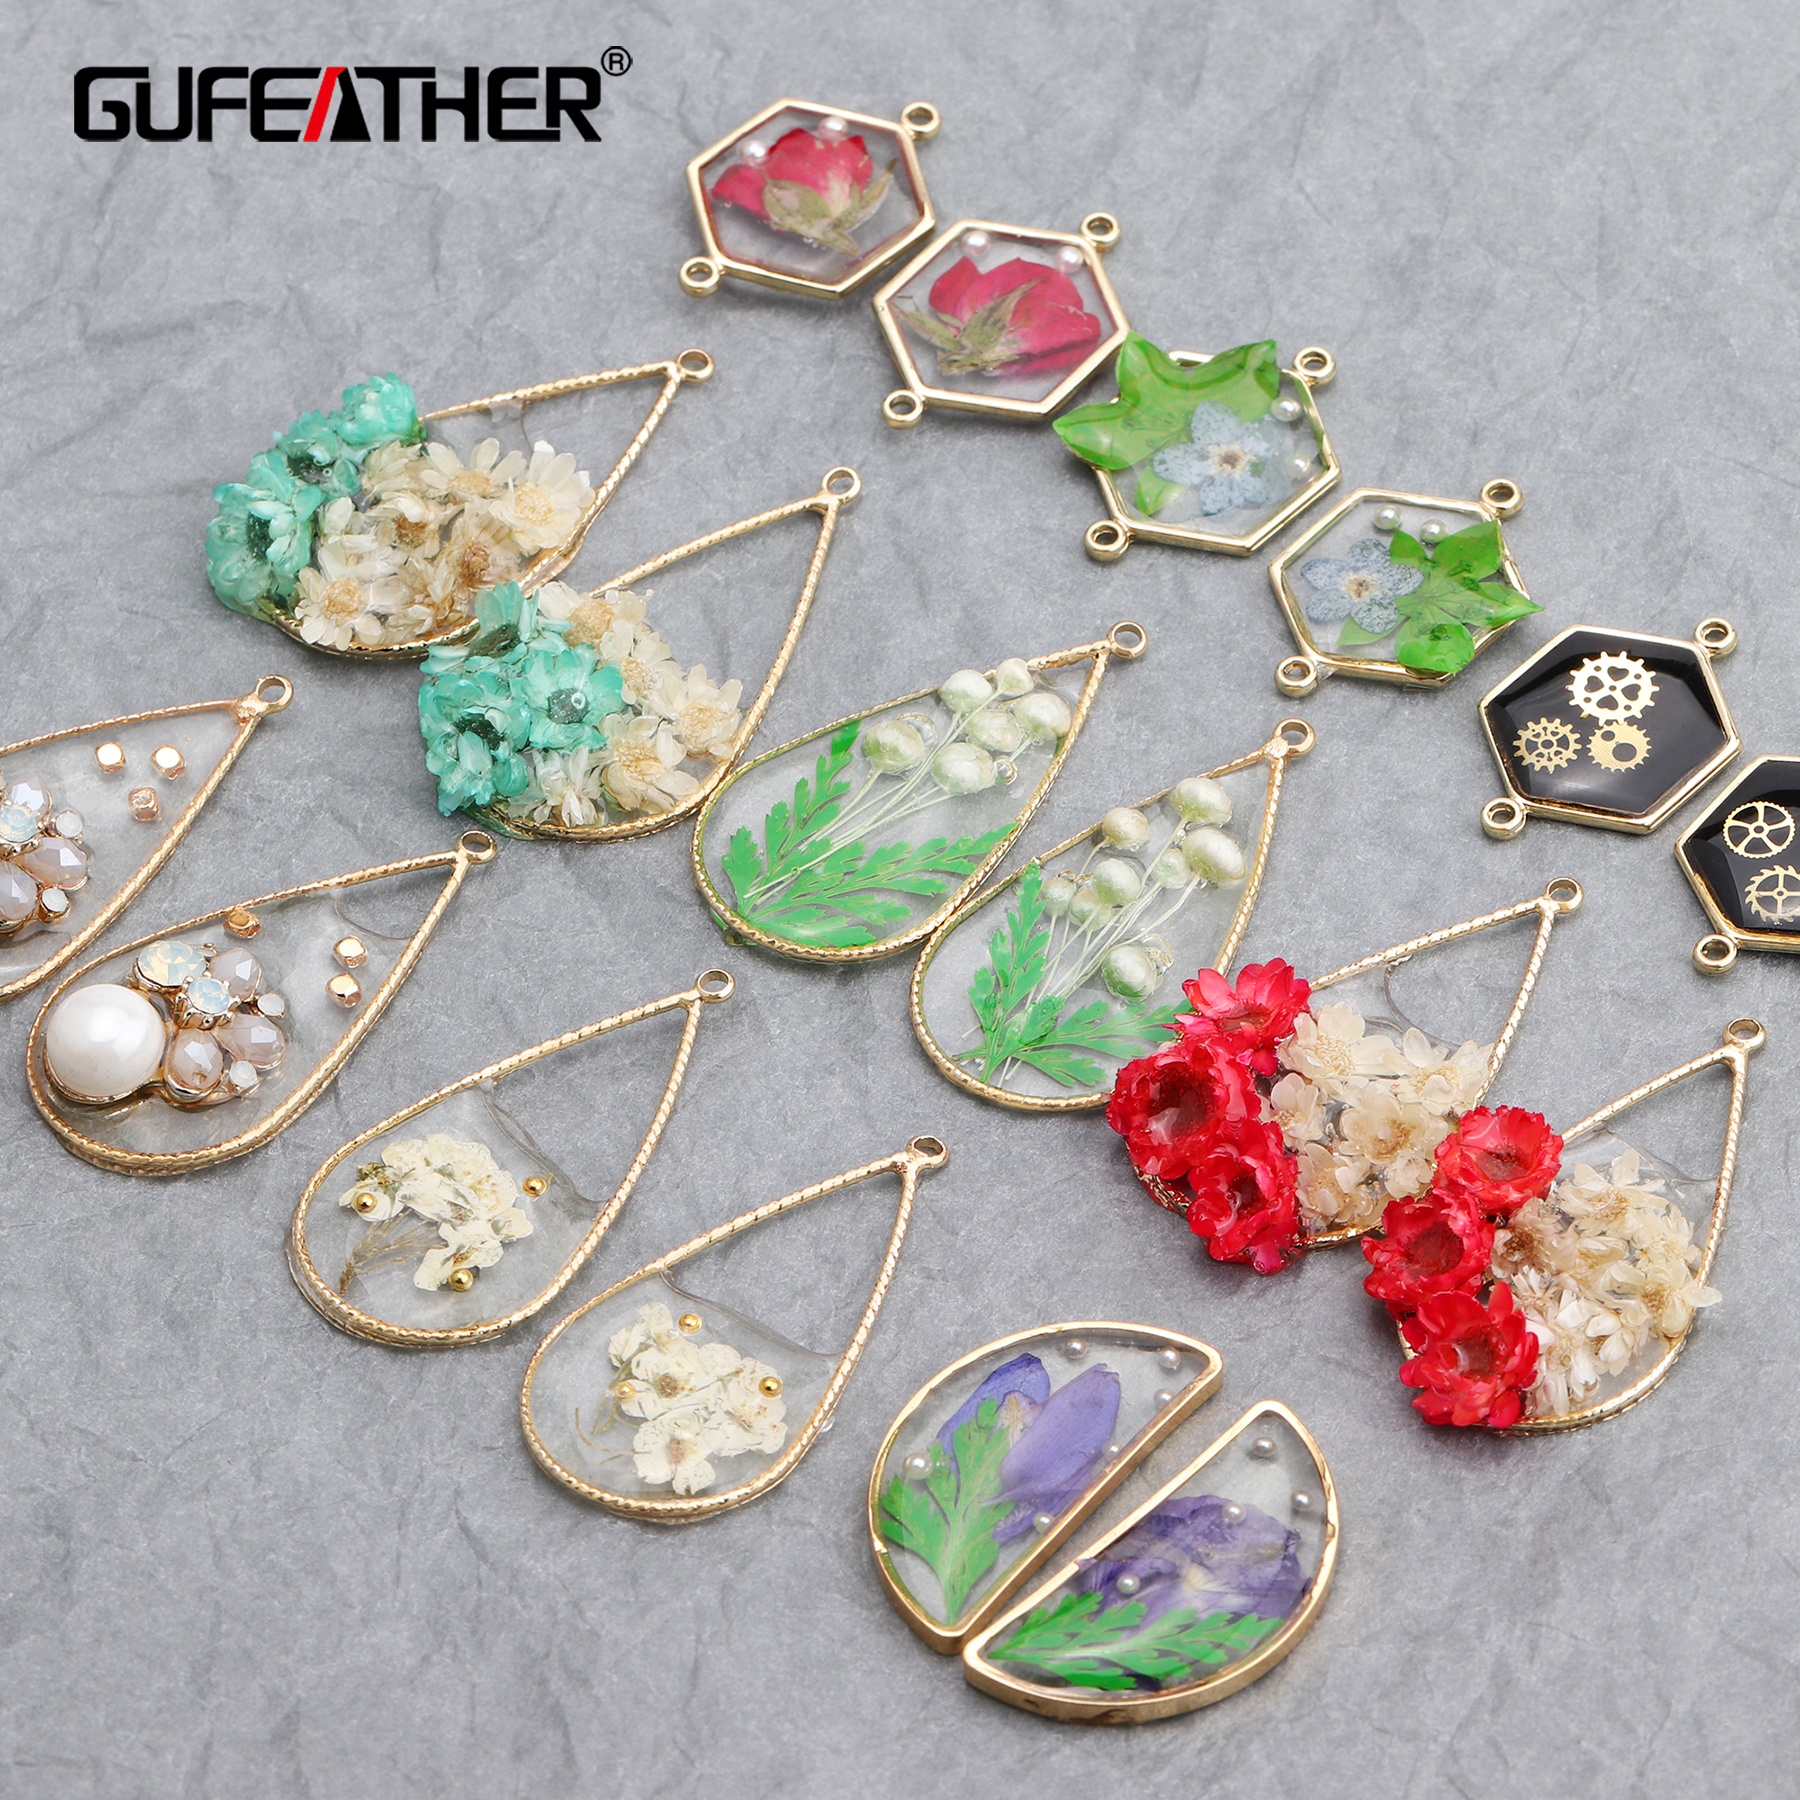 GUFEATHER M397,jewelry accessories,natural stone,diy pendant,jewelry findings,hand made,diy earrings,jewelry making,6pcslot